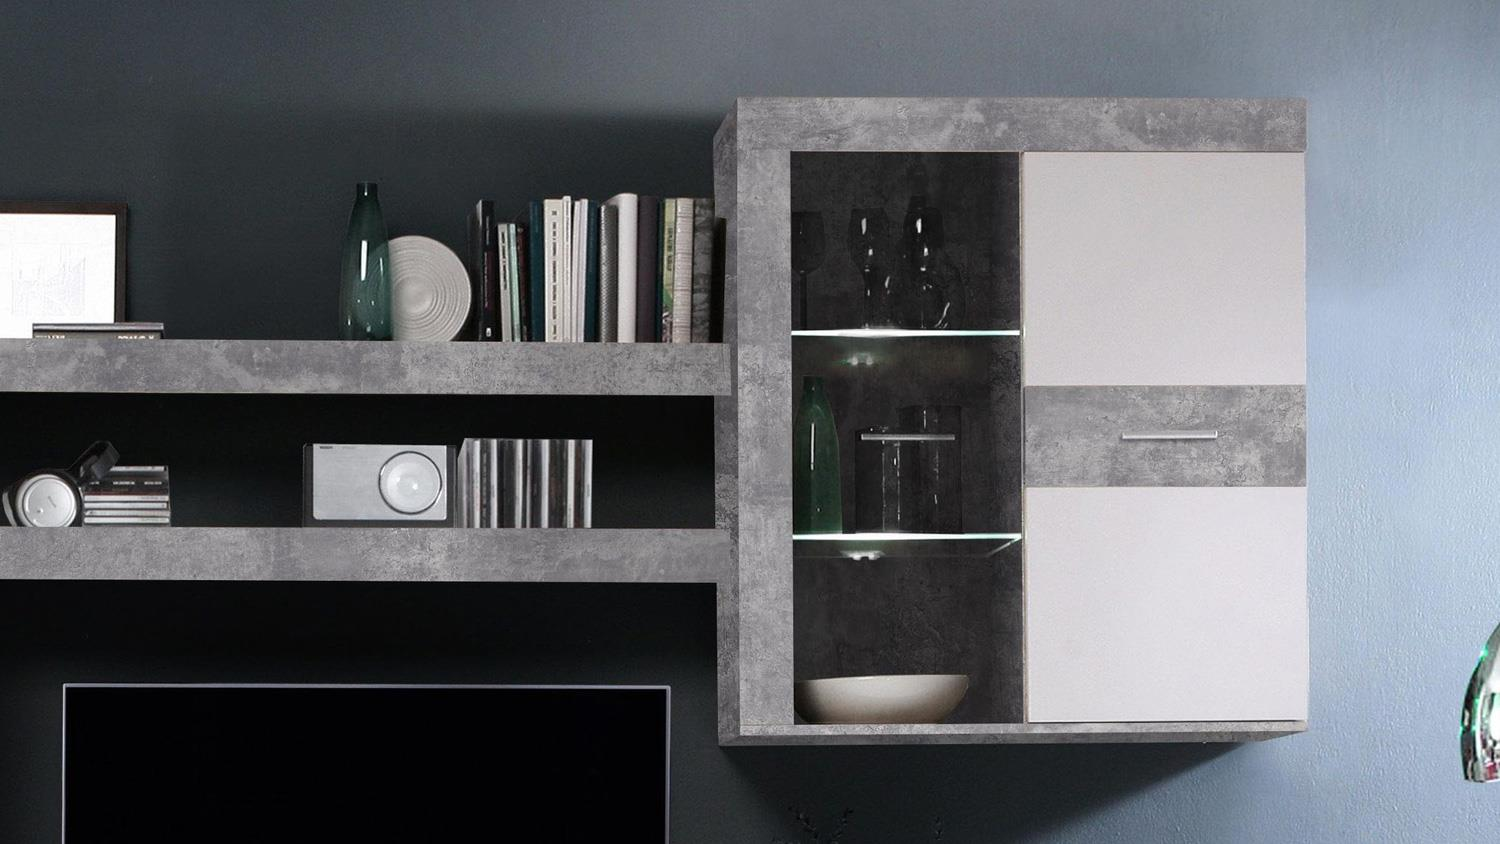 wohnwand zumba anbauwand in beton optik wei mit led beleuchtung. Black Bedroom Furniture Sets. Home Design Ideas